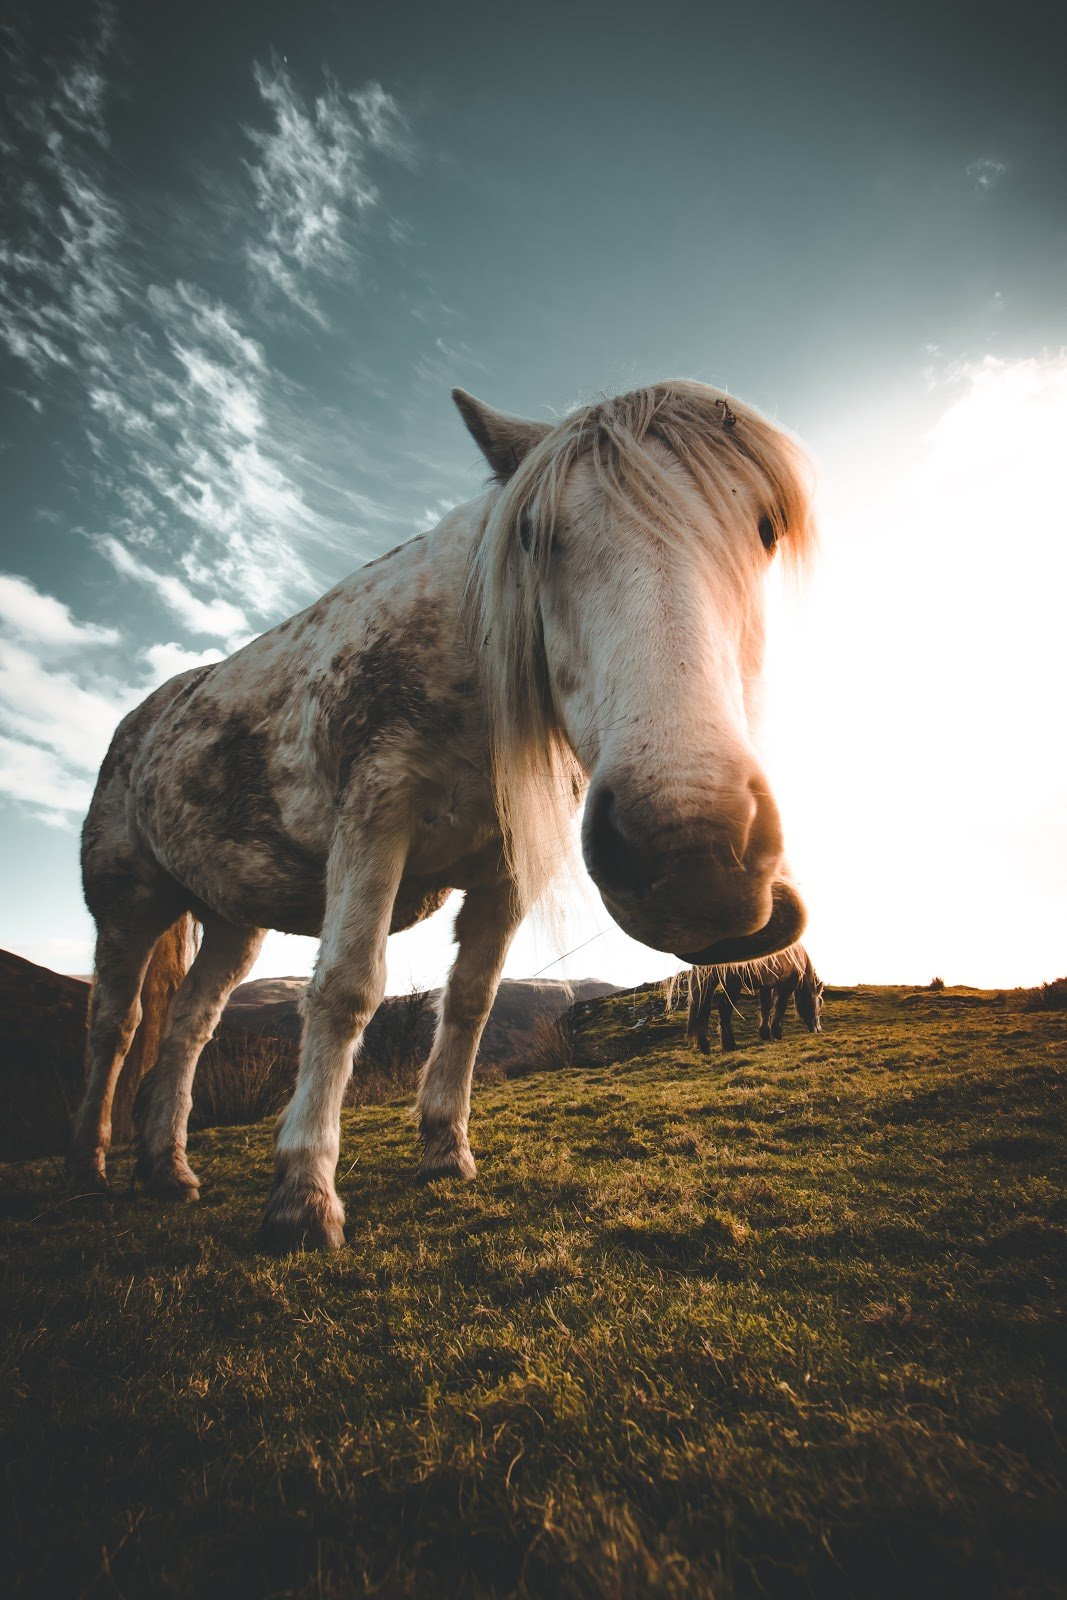 Close up shot of a white and rugged looking horse photo by Jack Finnigan